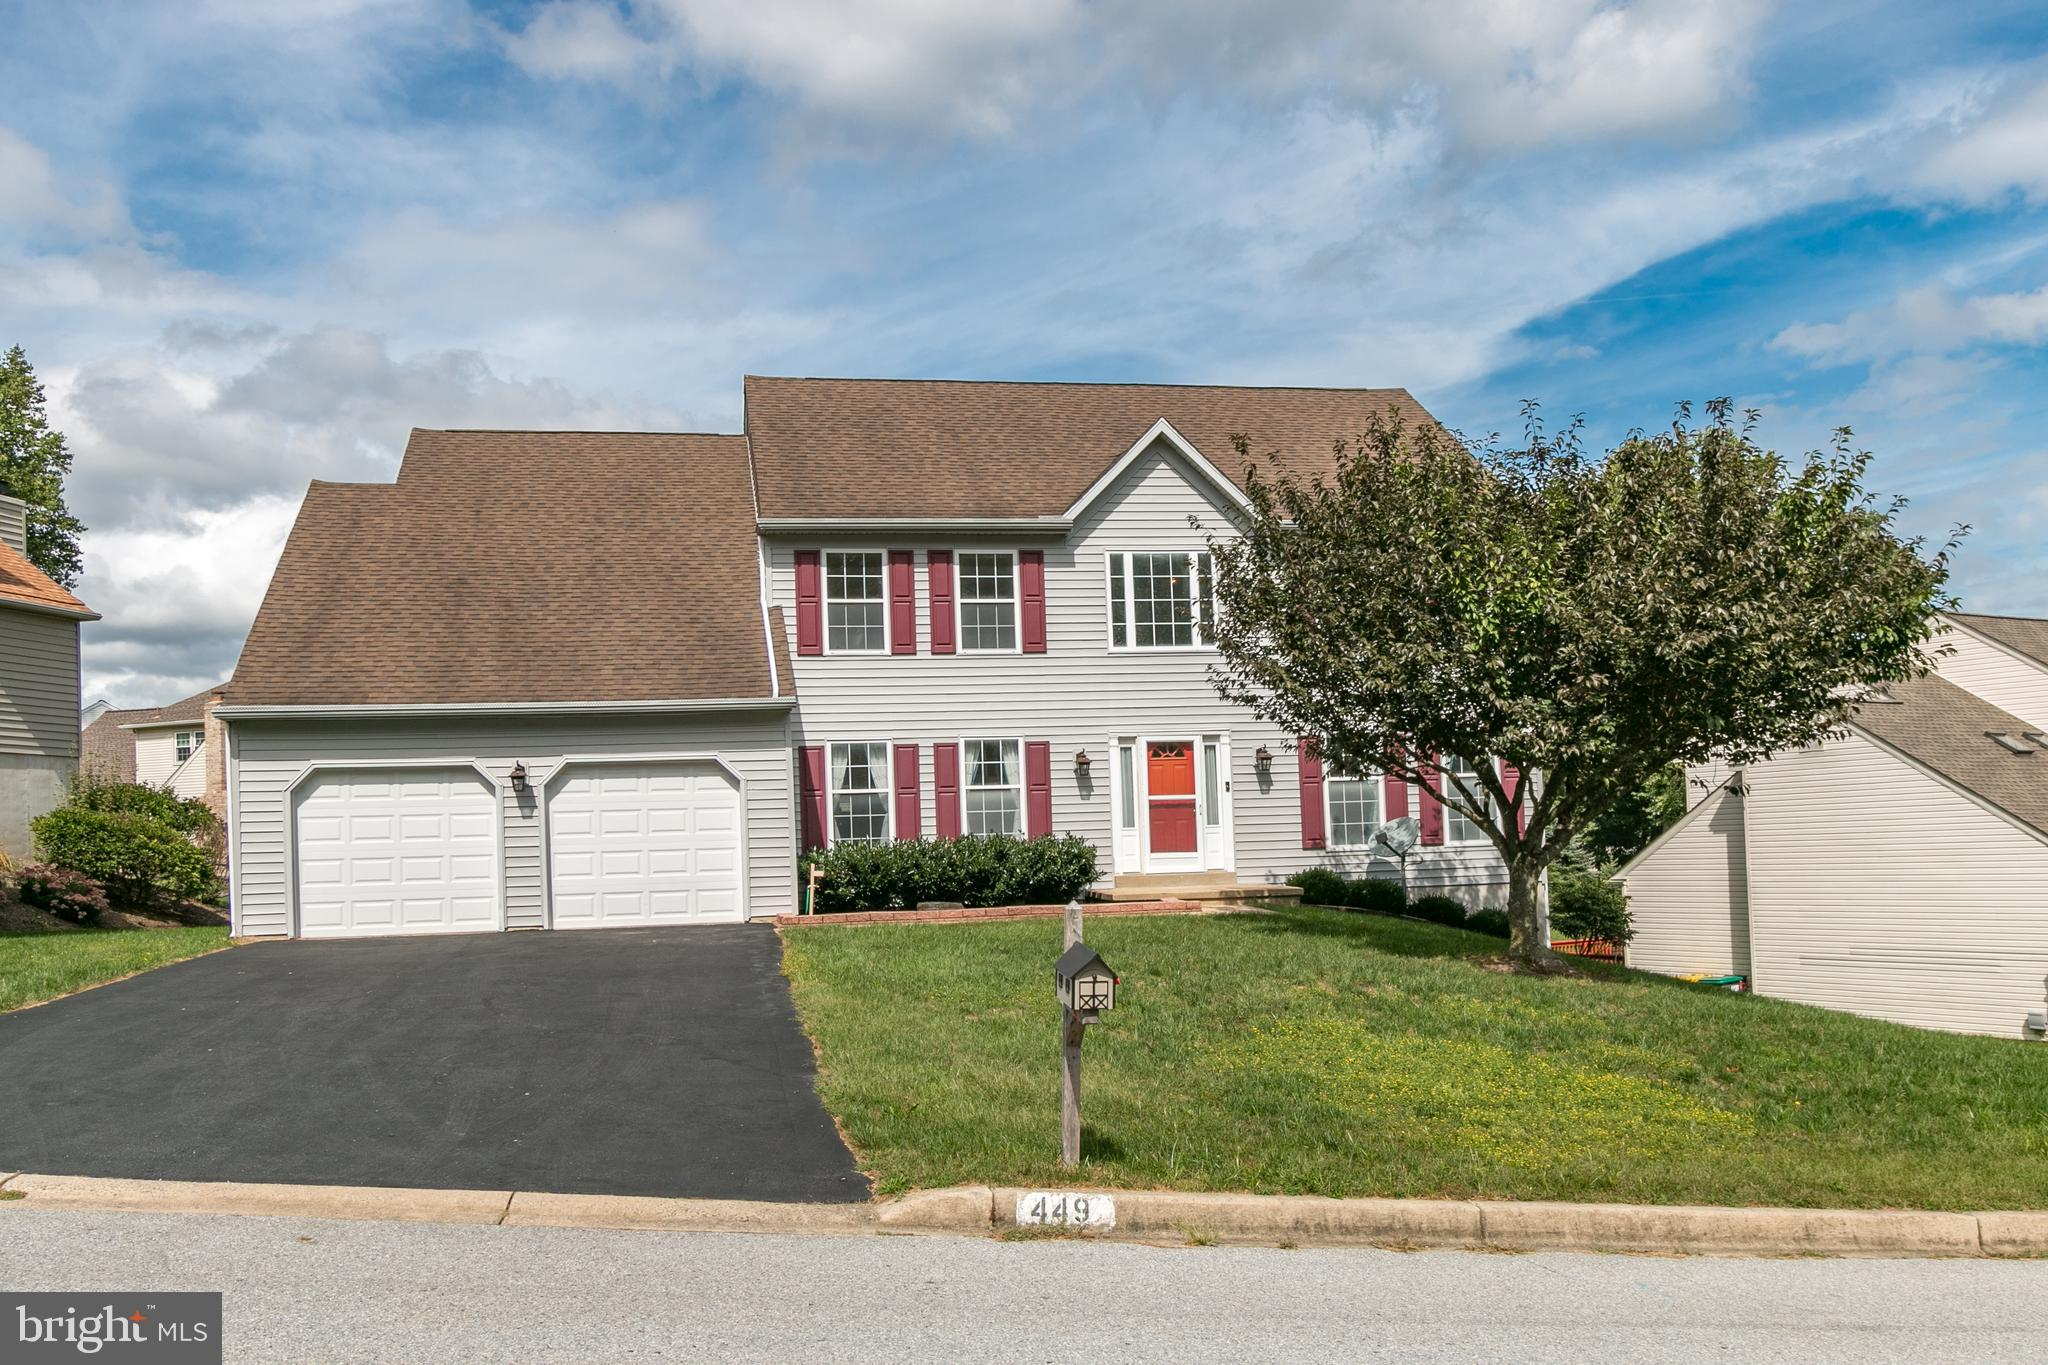 Opportunity to become the proud new owner of a beautiful gem in the Red Clay School District!  Conveniently located only moments from parks, schools, restaurants, shopping, nature trails, gym facilities, major roadways and even PA, this home is brimming with so much to love.  Walk up the spacious driveway and into the front door flanked by bright sidelights and immediately notice the two-story entryway that features a grand and welcoming entrance.  Located on either side of the foyer are the living room and dining rooms.  Here you will find recently installed neutral carpet, wood flooring, attractive crown molding and chair rail and tall windows that fill the rooms with lovely sunlight.  Continue into the impressive and expansive eat-in kitchen with beautiful cabinetry, upgraded counter tops, tile back splash, center island with built-in storage and electric, gas cooking, built-in microwave, a very large pantry closet and a double sink with a bright garden window.  This room is ideally open to the inviting family room with tall ceilings, wood flooring and a cozy gas fireplace.  There is so much space here for you to arrange your furnishings just as you choose. You and your guests will love the open design to  the kitchen and eating area.  More features to love on this main living level include the private powder room, tucked away laundry room with a useful utility sink, coat closet and best of all...a first floor bonus room that can be used a home office, den, playroom, bedroom or however you wish!  There are so many options for utilizing this space.  Access the well crafted screened-in porch from the kitchen and delight in this outdoor/indoor space that you can enjoy throughout most of the year.  It accesses the maintenance-free deck with vinyl rail that is perfect space for enjoying the outdoors.  You are sure to appreciate all of these options for an outdoor use of space.  Continue upstairs to find even more impressive features that include four generously sized 